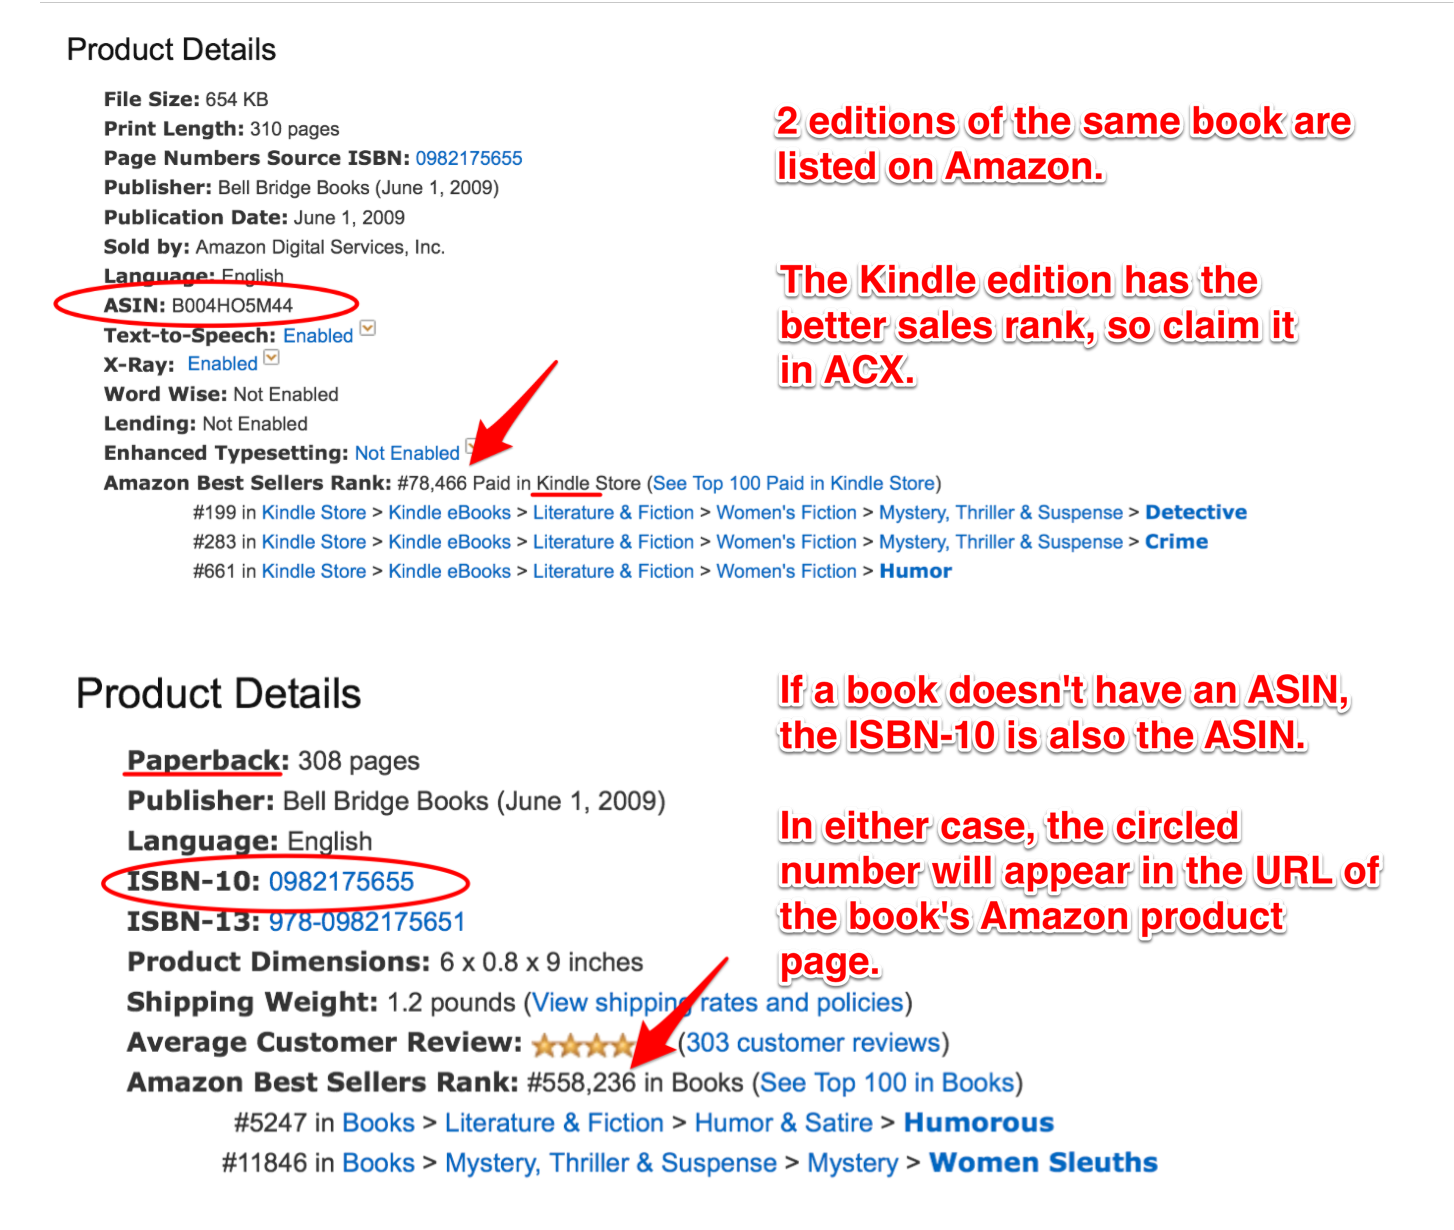 Chart shows where to find the Amazon ID and sales ranks for each edition.